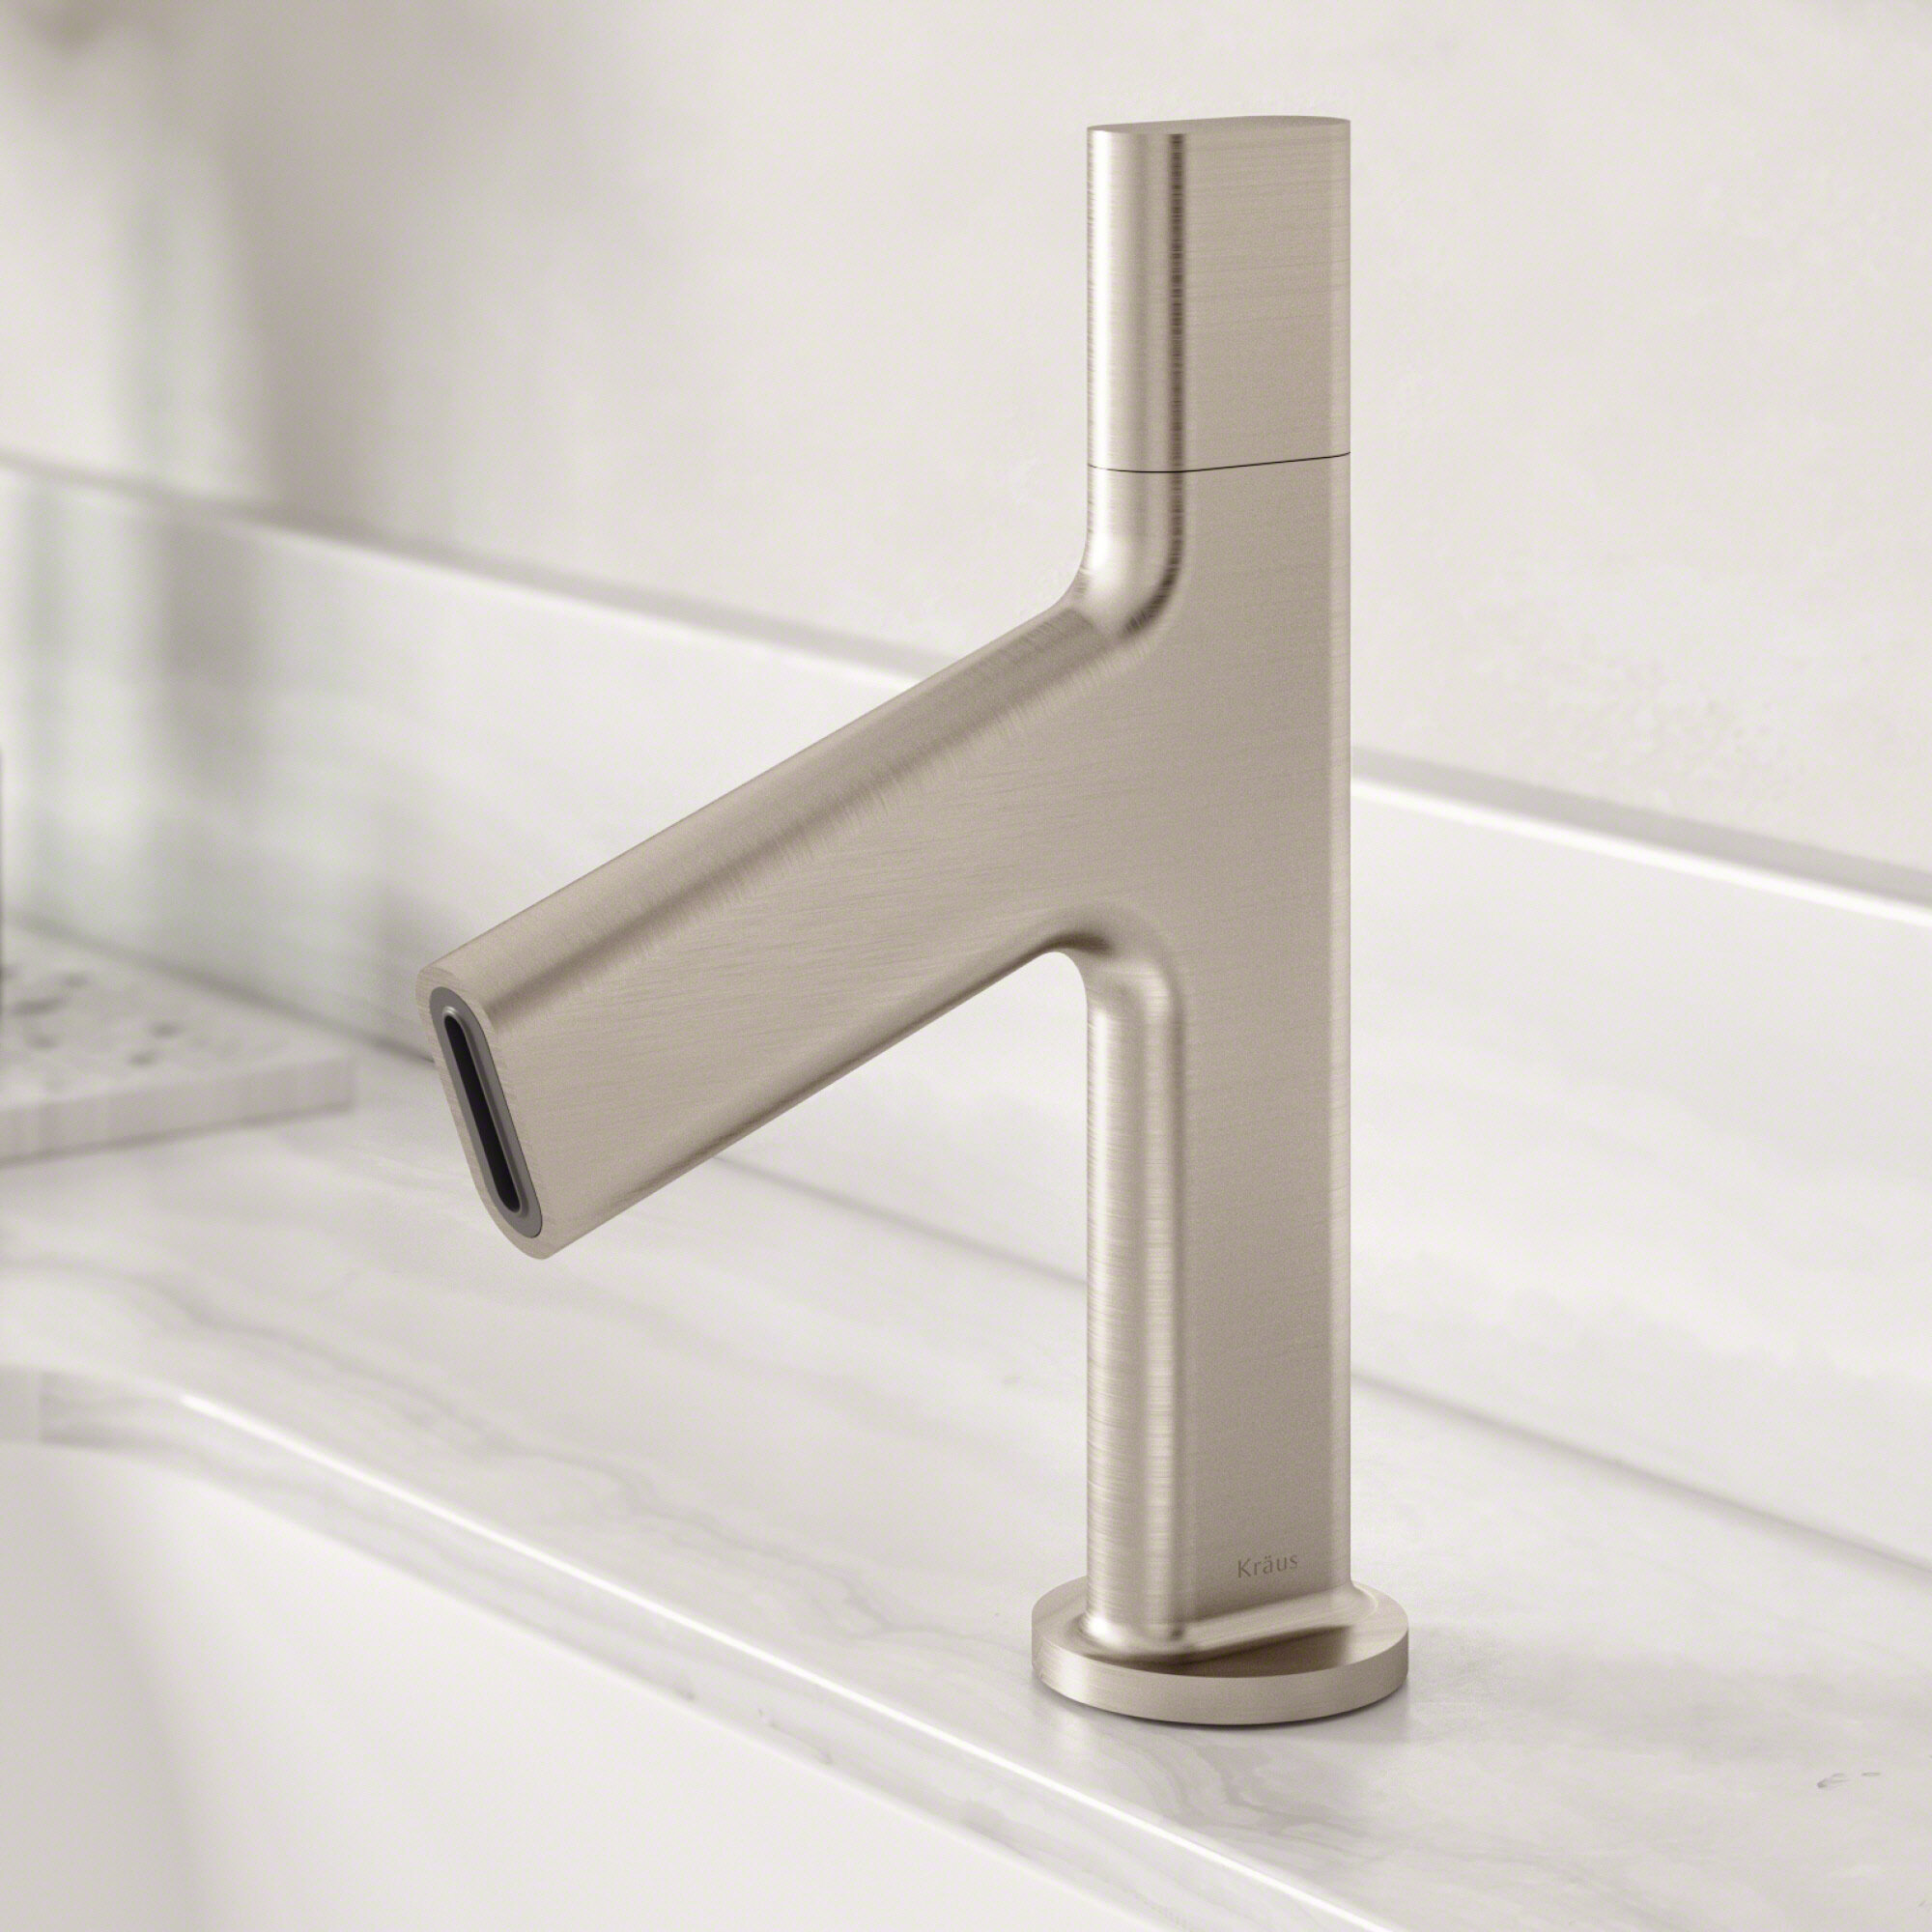 clean brushed comfortzone nickel quick single faucets assembly metris technologies ecoright and hole drain bathroom included hansgrohe with faucet